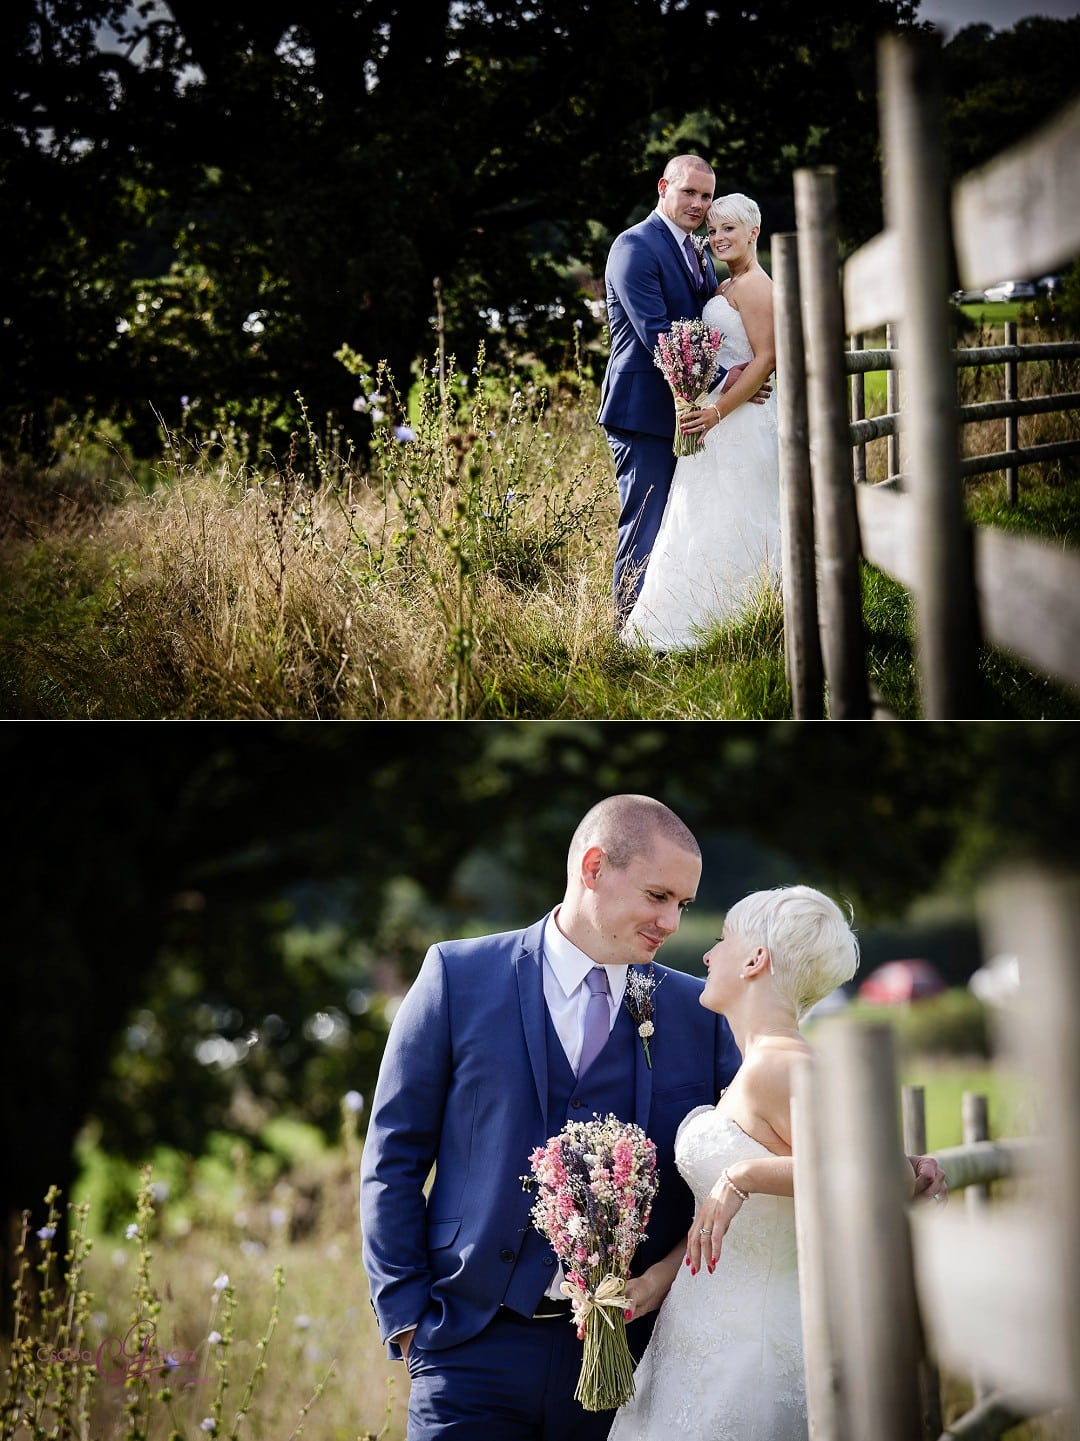 Countryside Wedding Photography in Hertfordshire